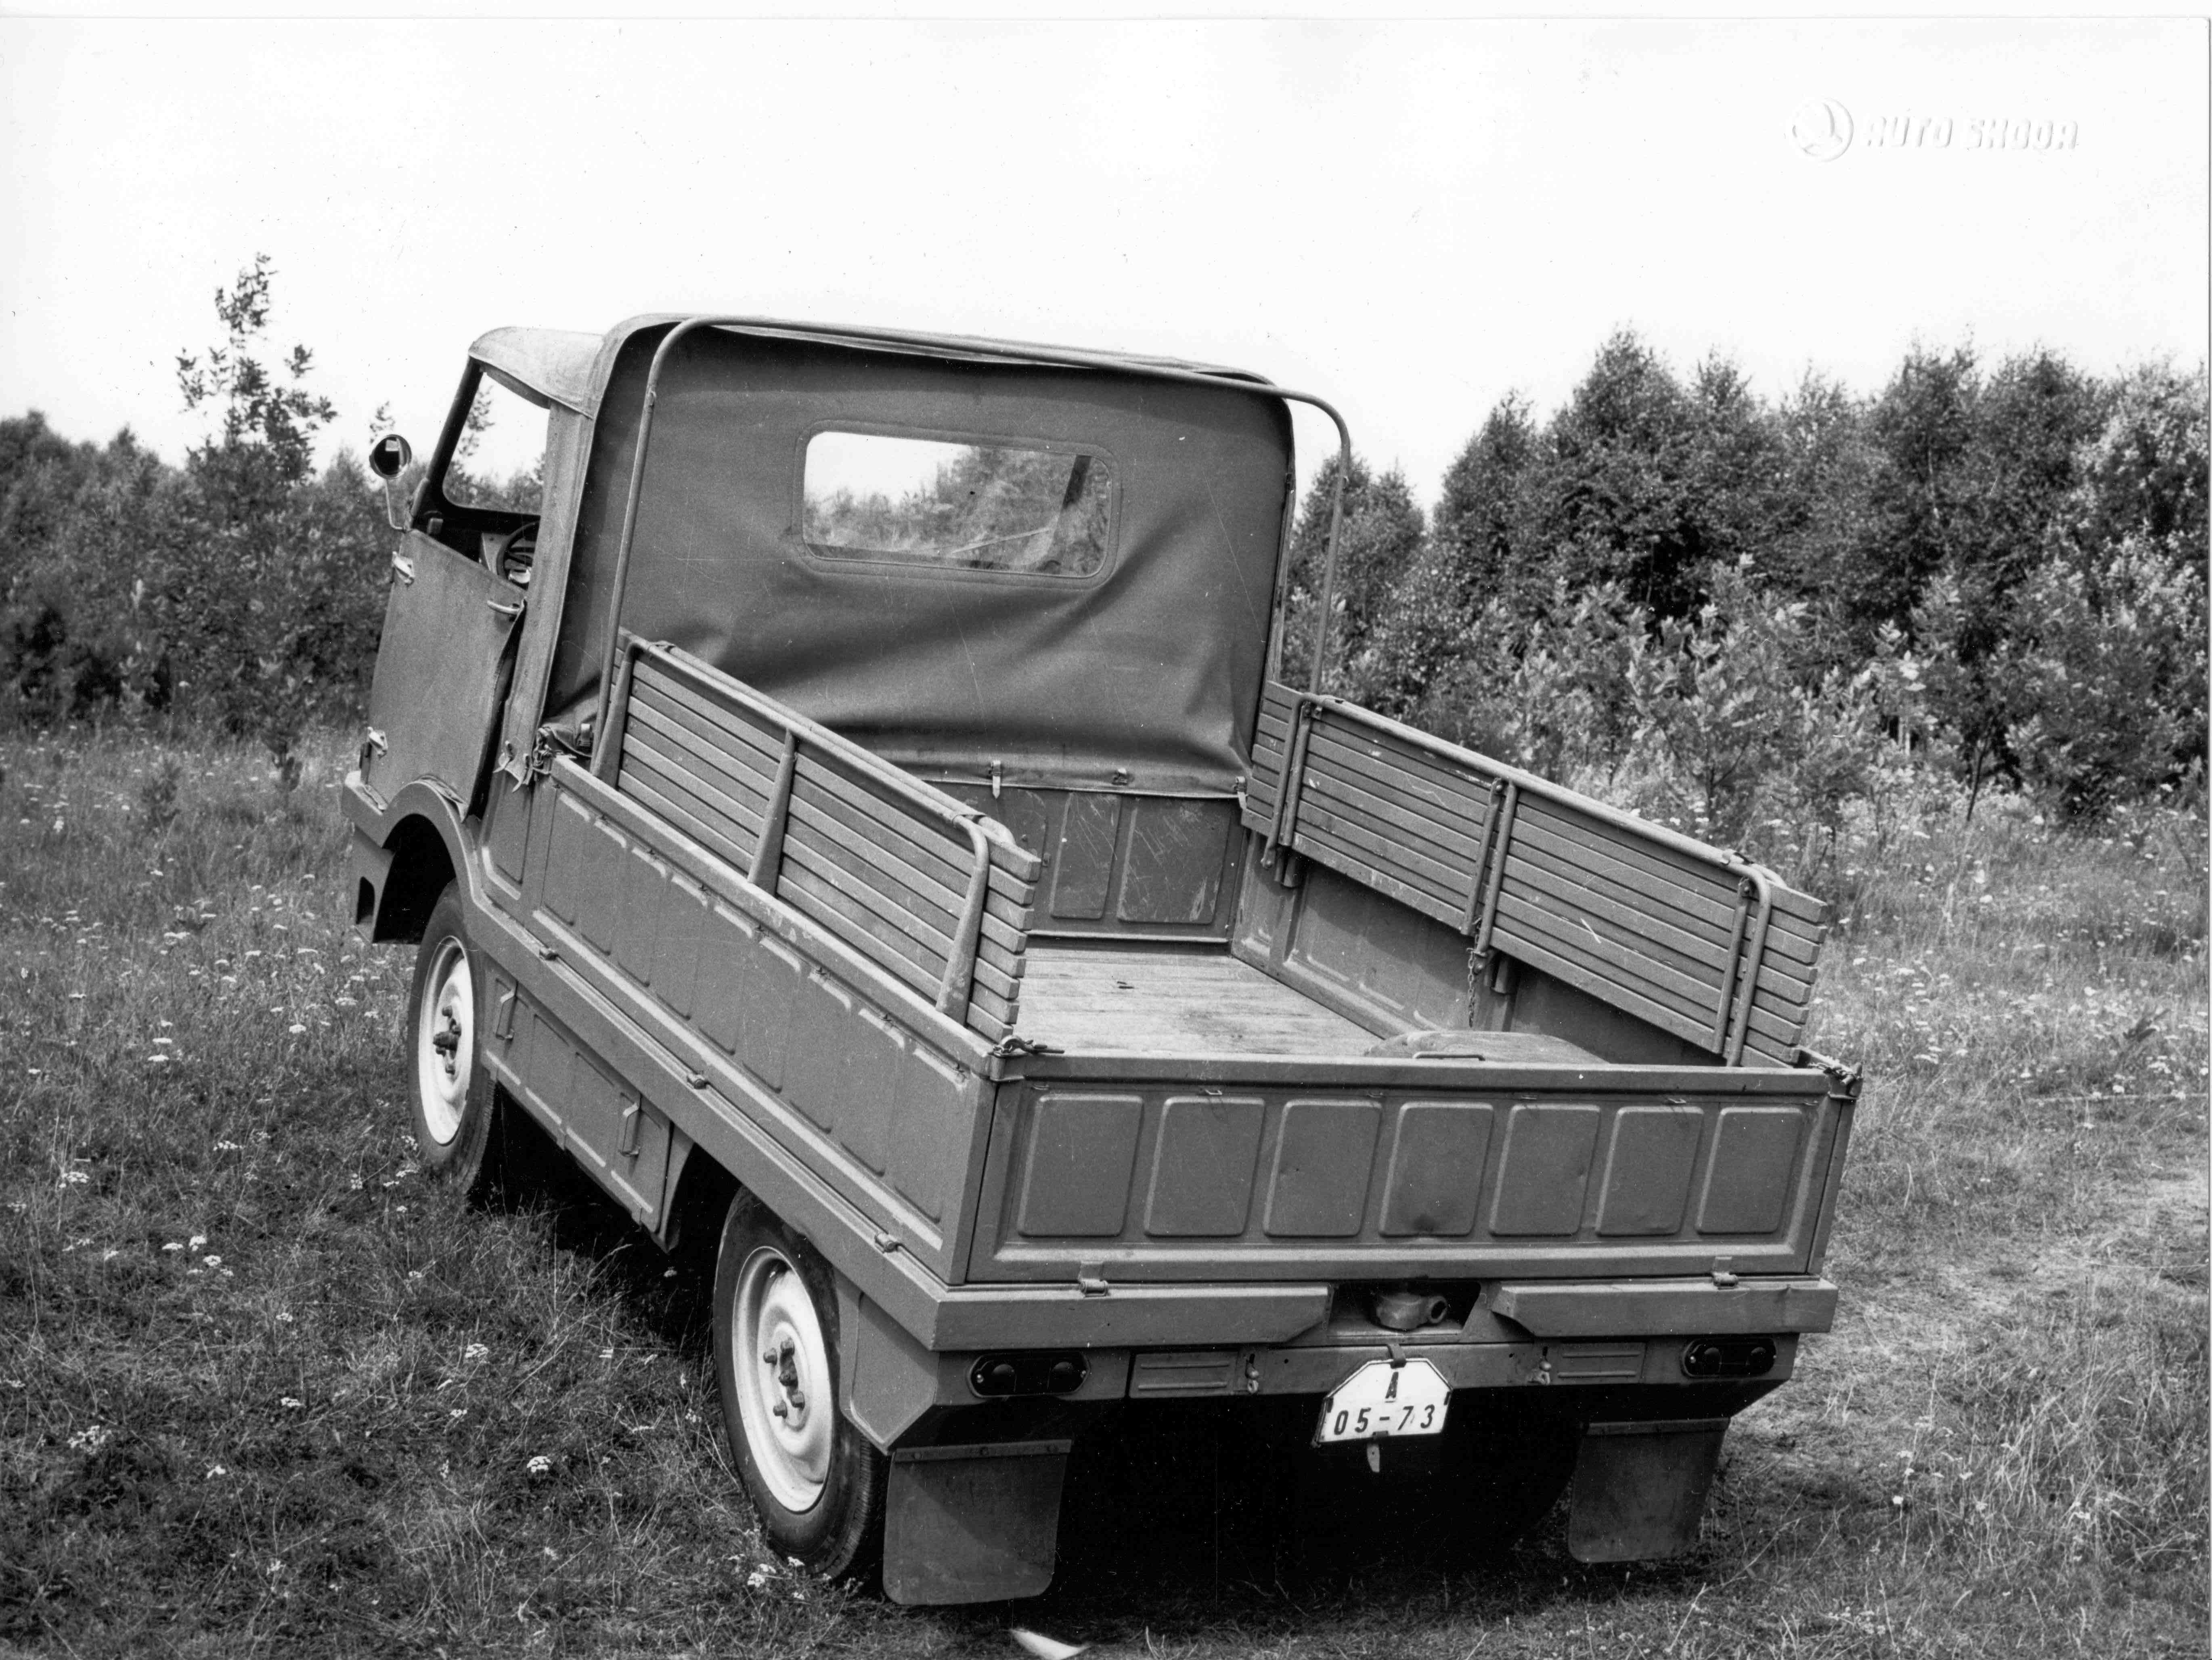 Lesser-known models from SKODA AUTO's 125-year history: Type 998 'Agromobil' from 1962 - Image 4